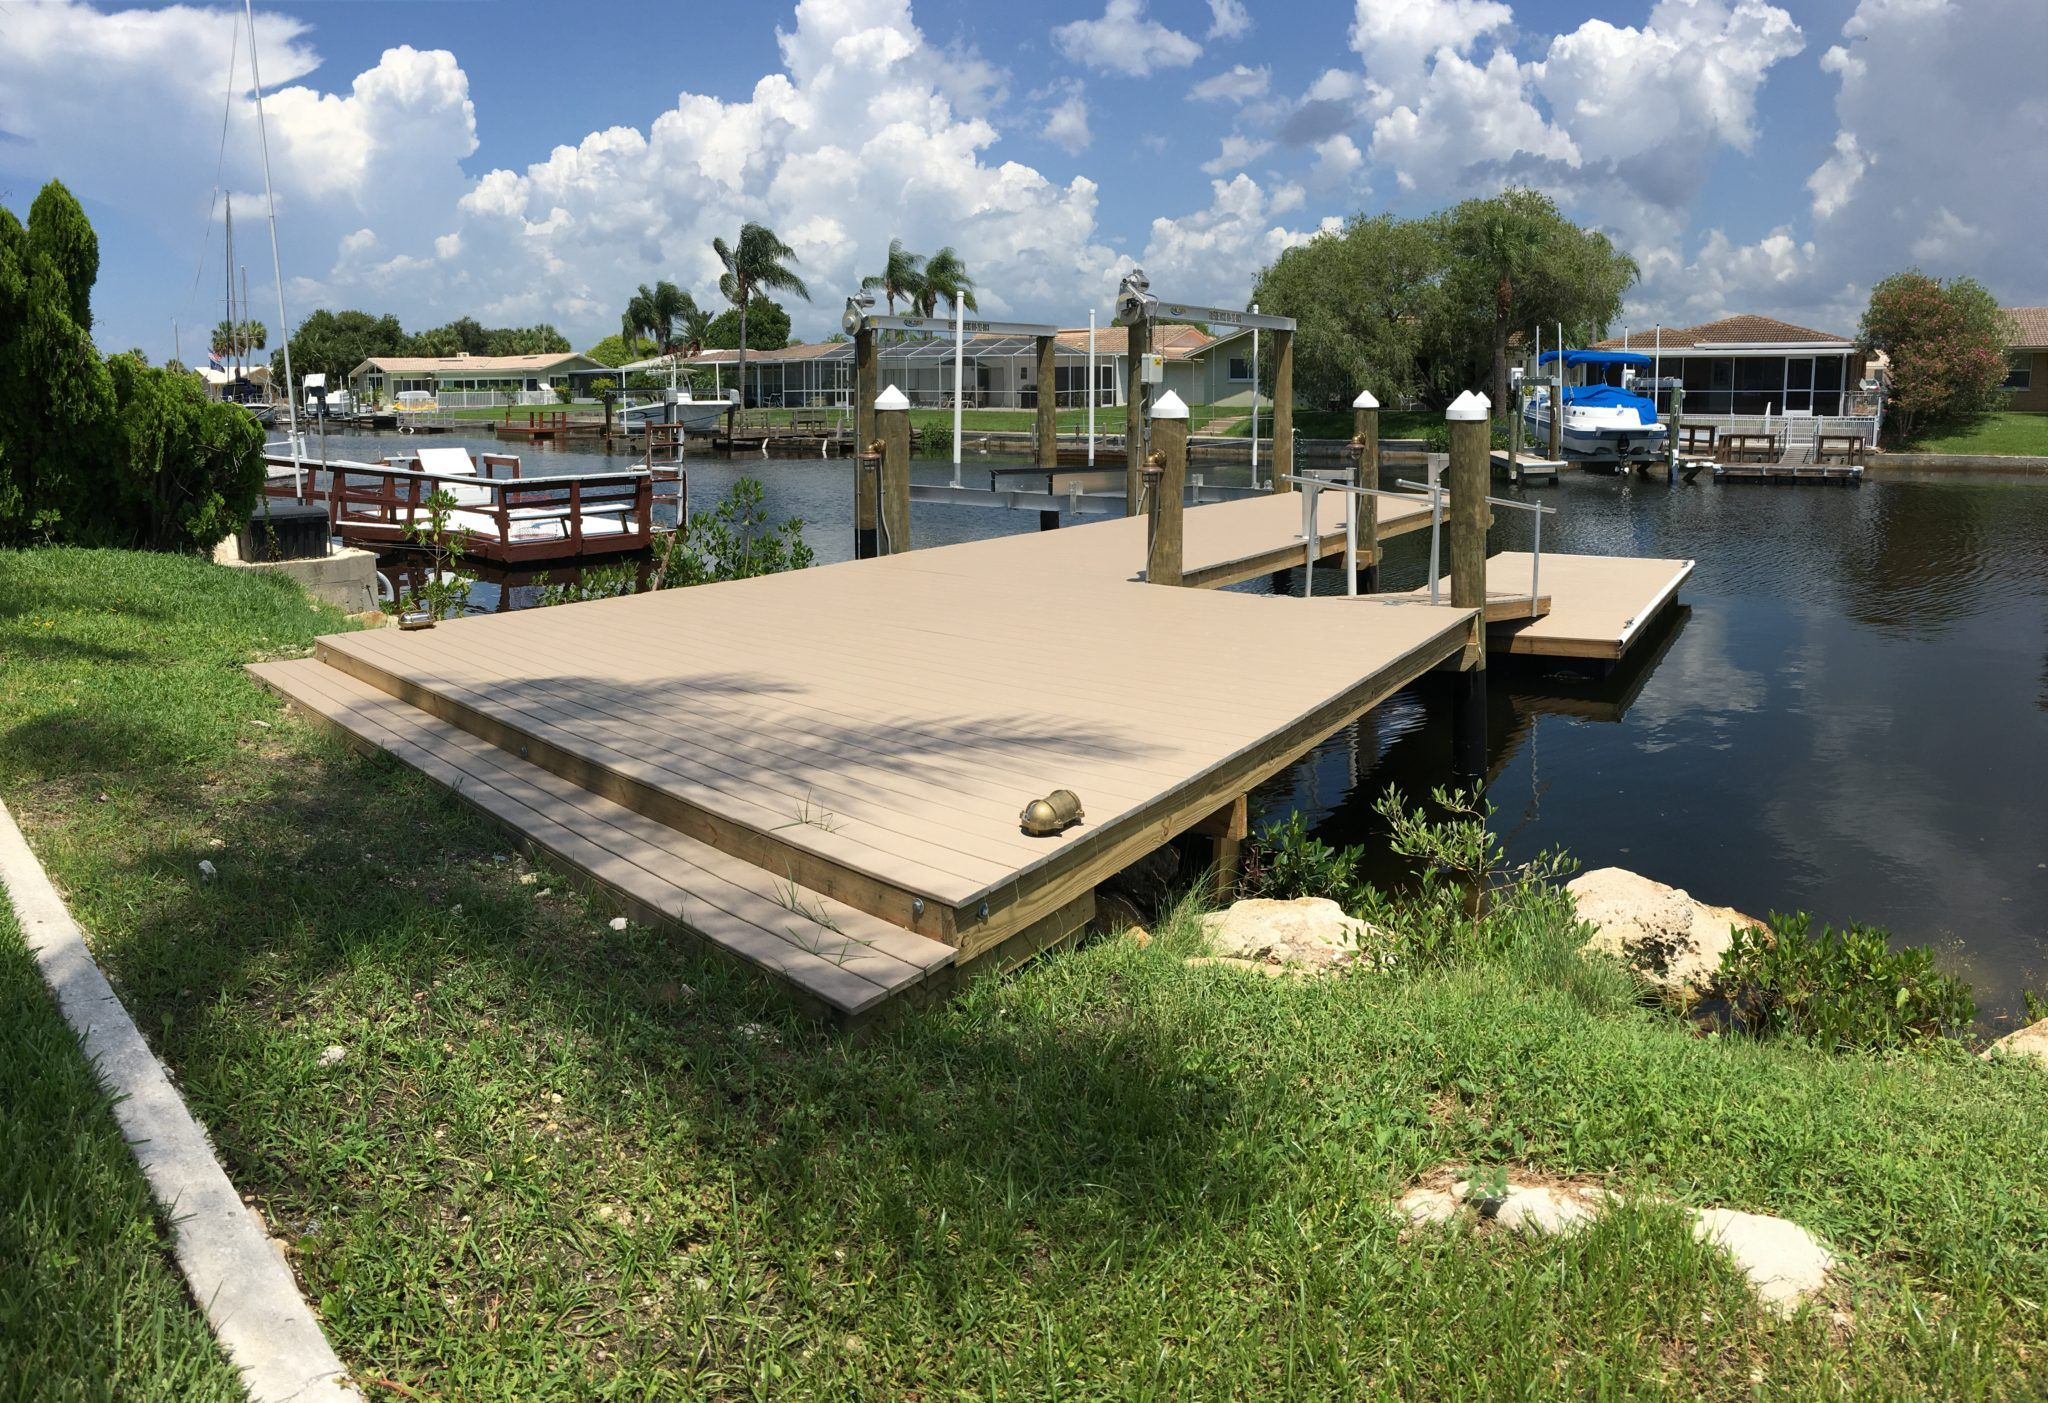 A new Trex stationary dock and attached floating dock with a new aluminum boat lift